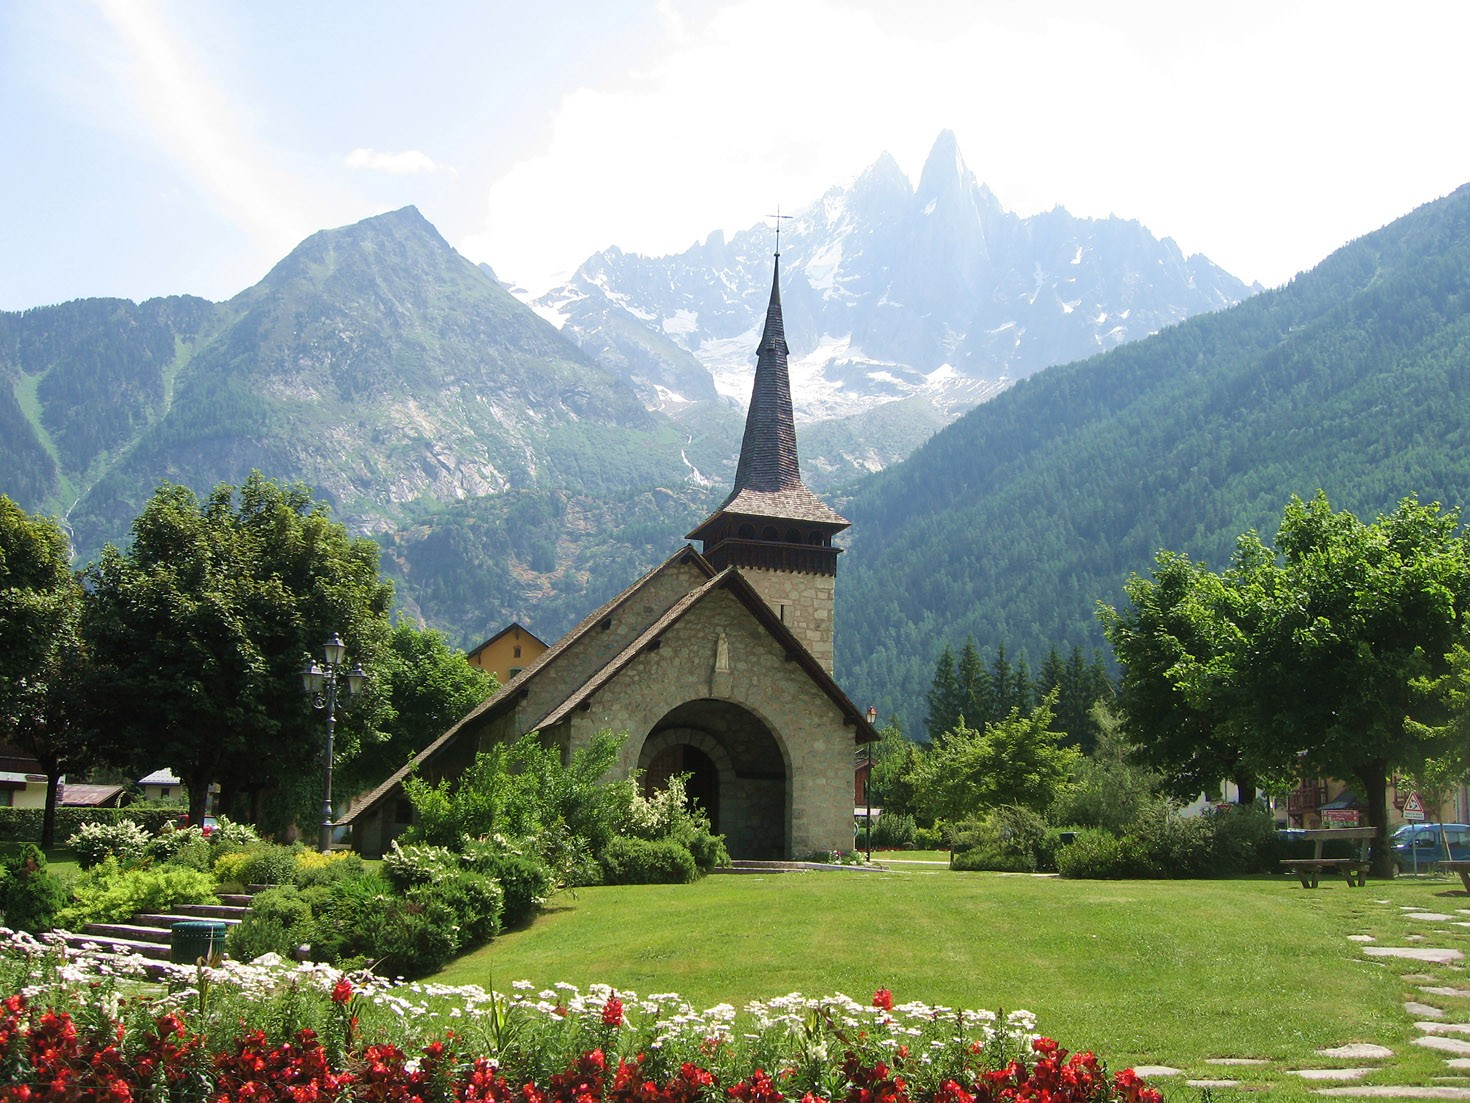 Les Praz church in summer